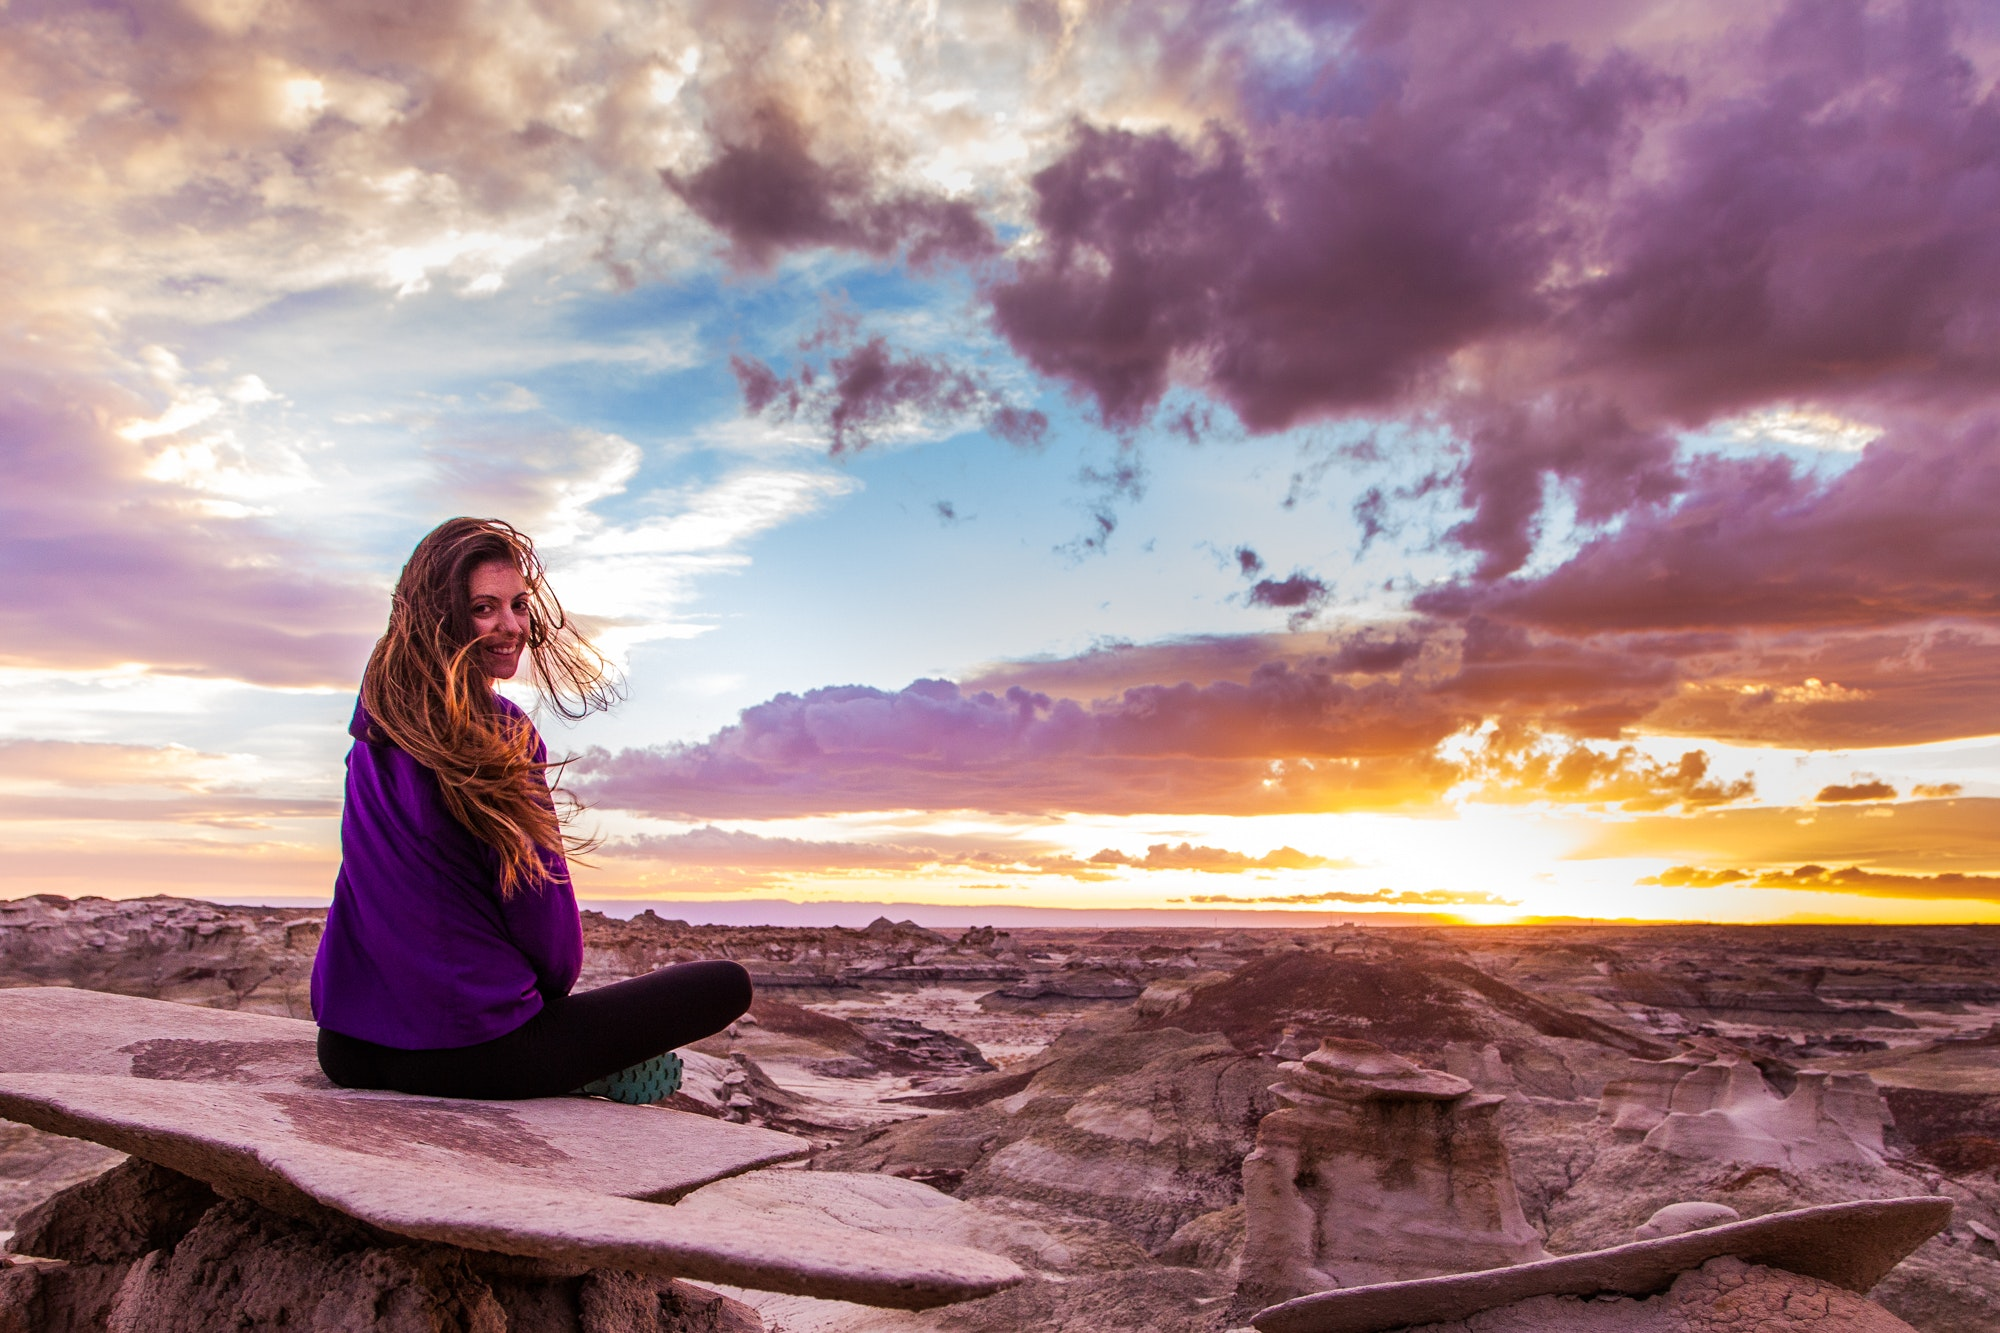 Woman Sits on Mountain Under Cloudy Sky at Sunset, Clouds, Outdoors, Sunset, Sun, HQ Photo